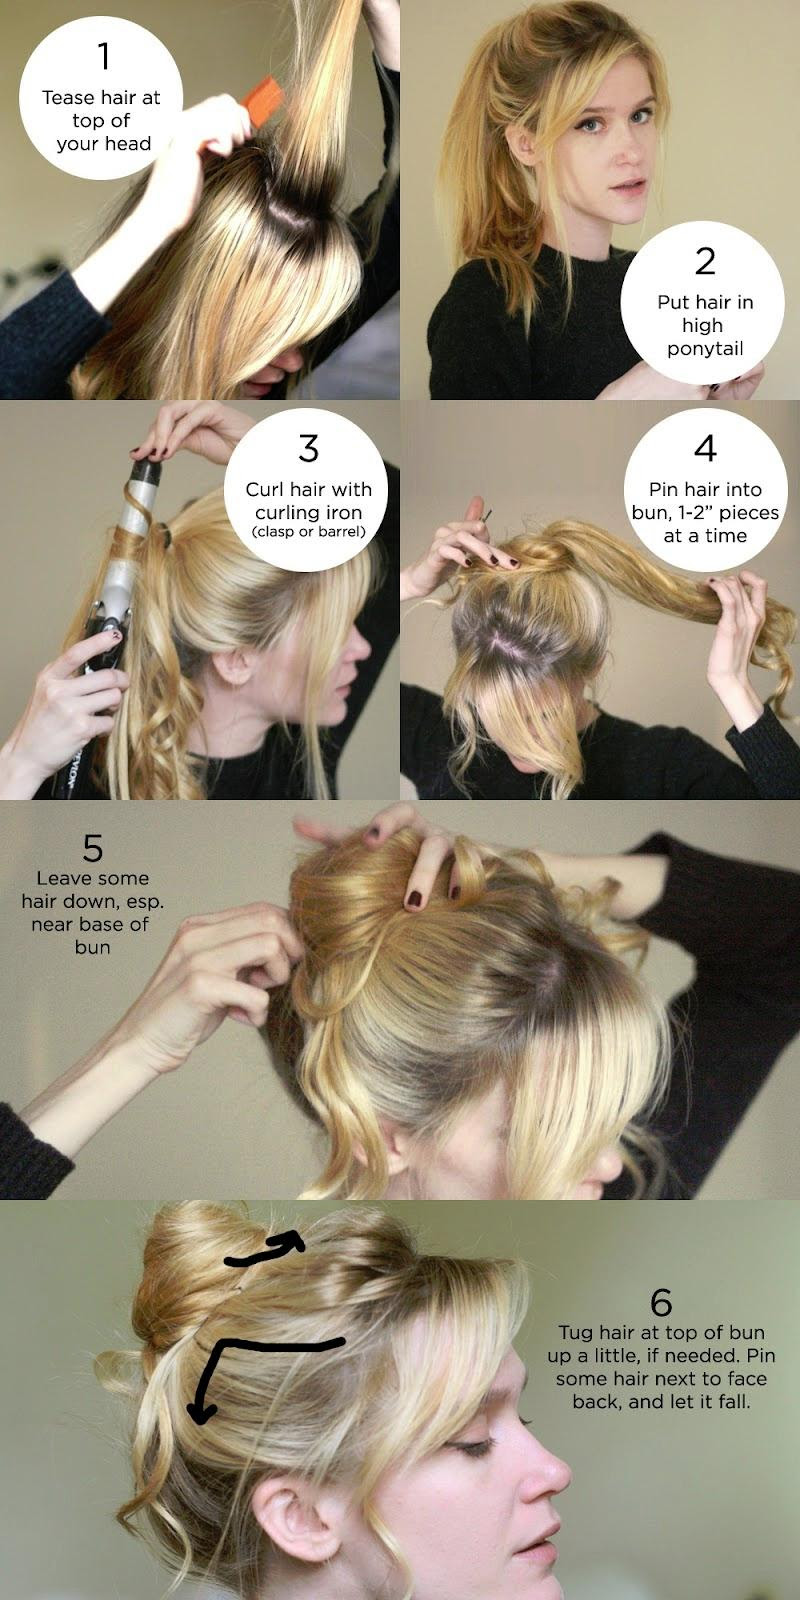 How to style a Messy bun tutorial | Hairstyles How To